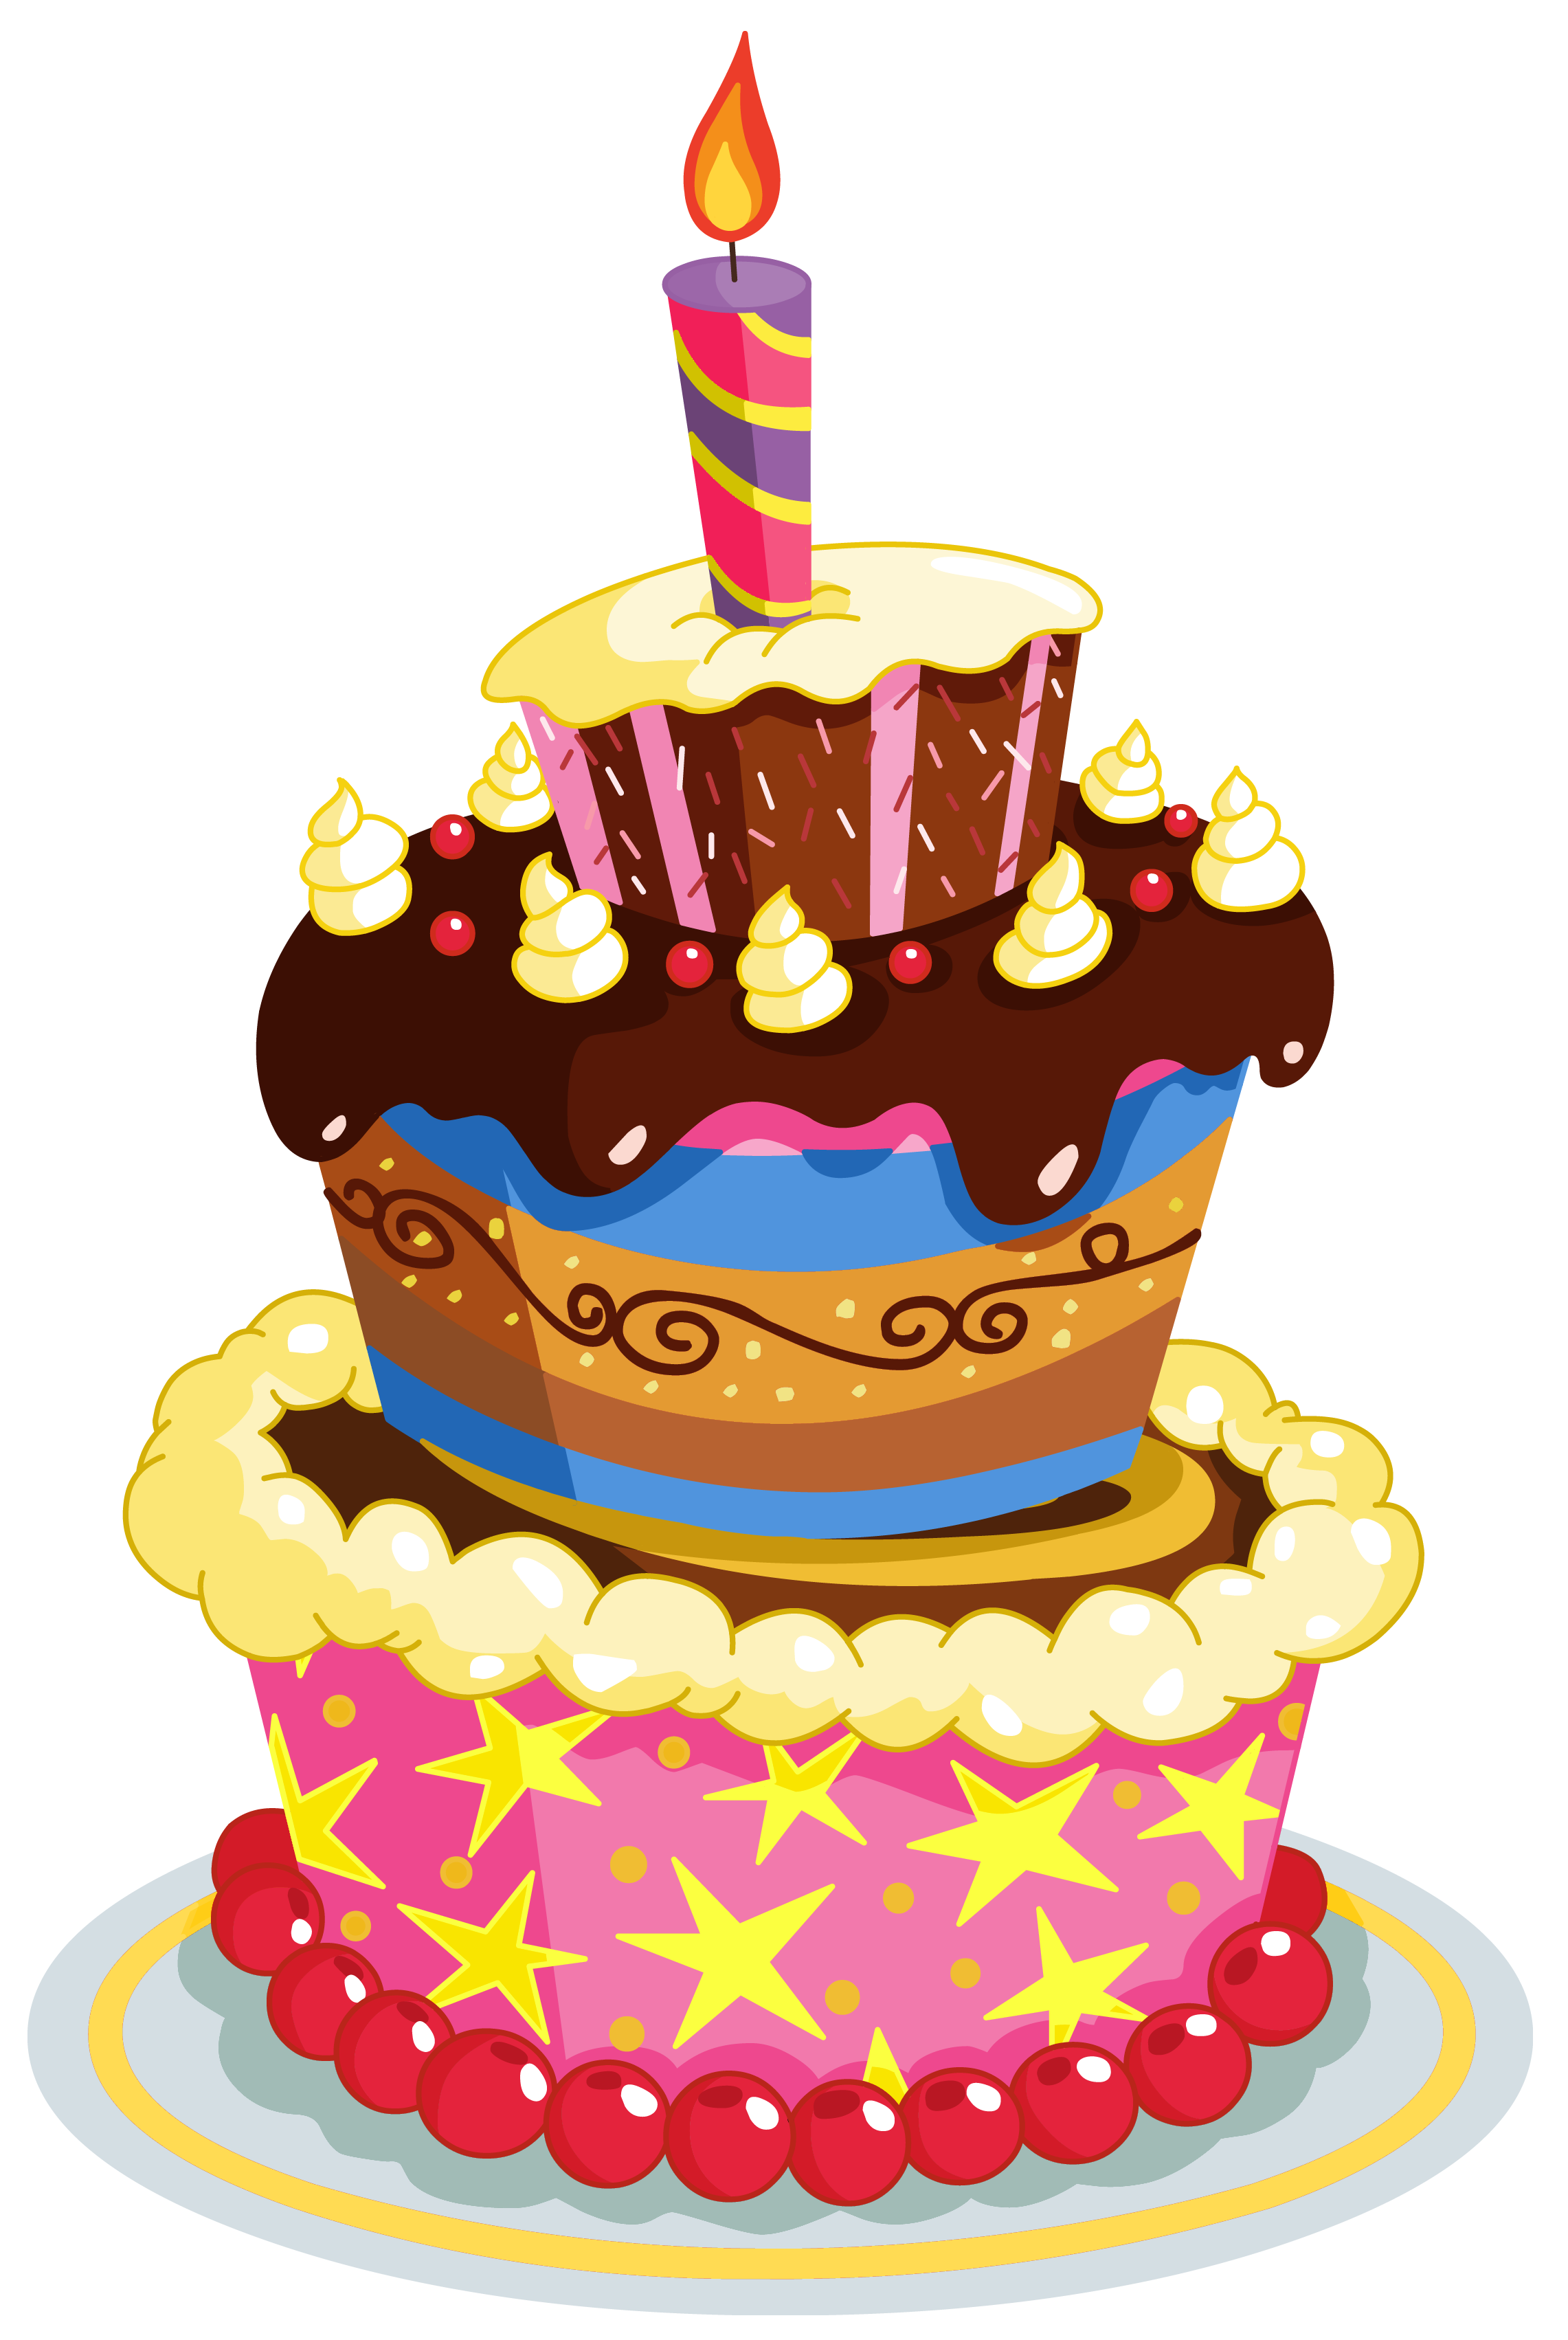 Clipart of birthday cake. Colorful png clip art